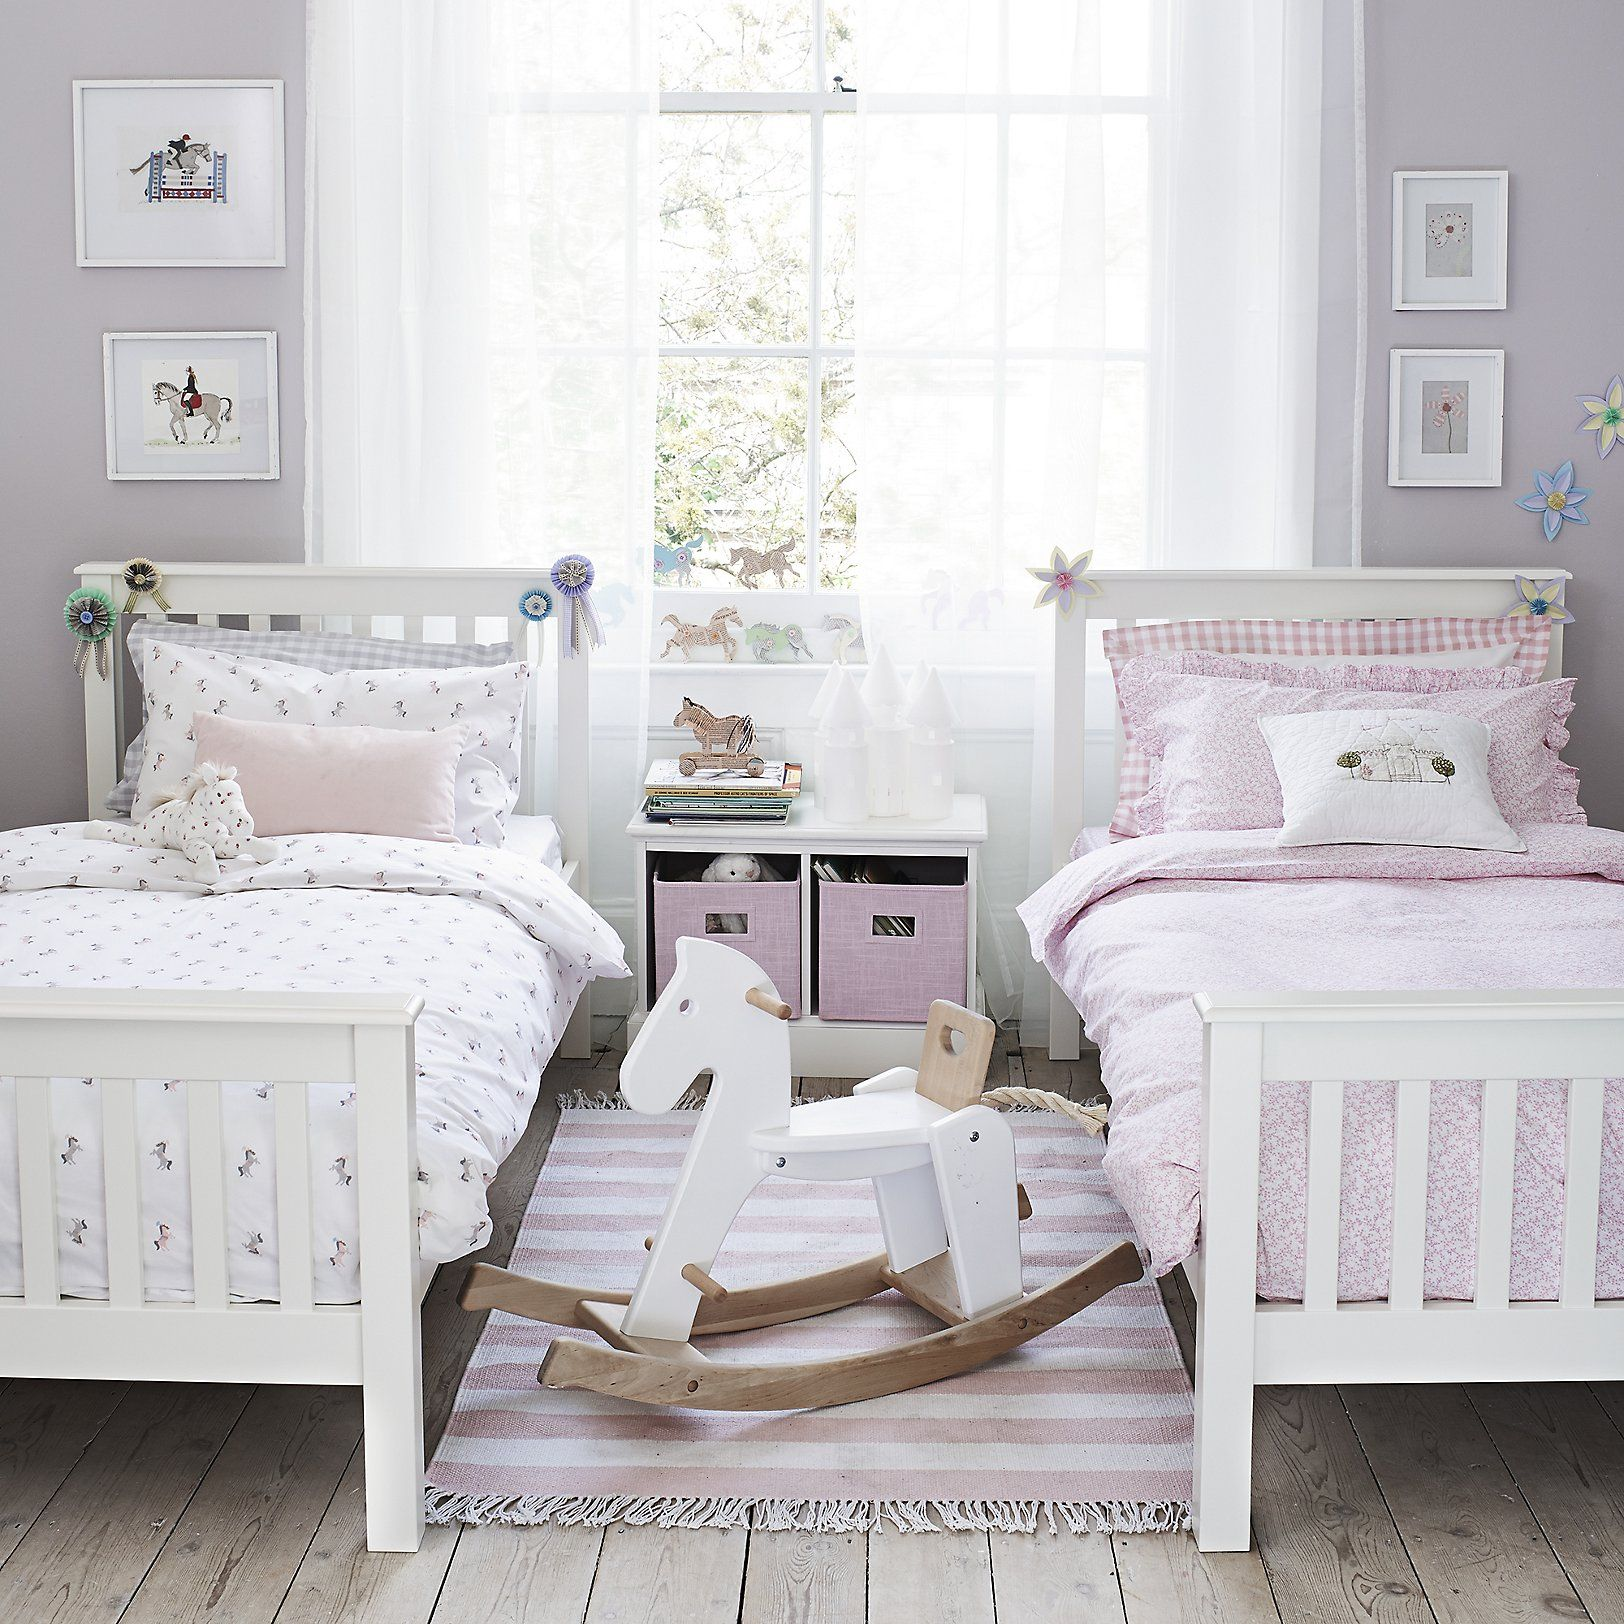 Storage Cube Children S Home Sale The White Company Bed Linens Luxury Toddler Bedroom White Childrens Bedroom Inspiration